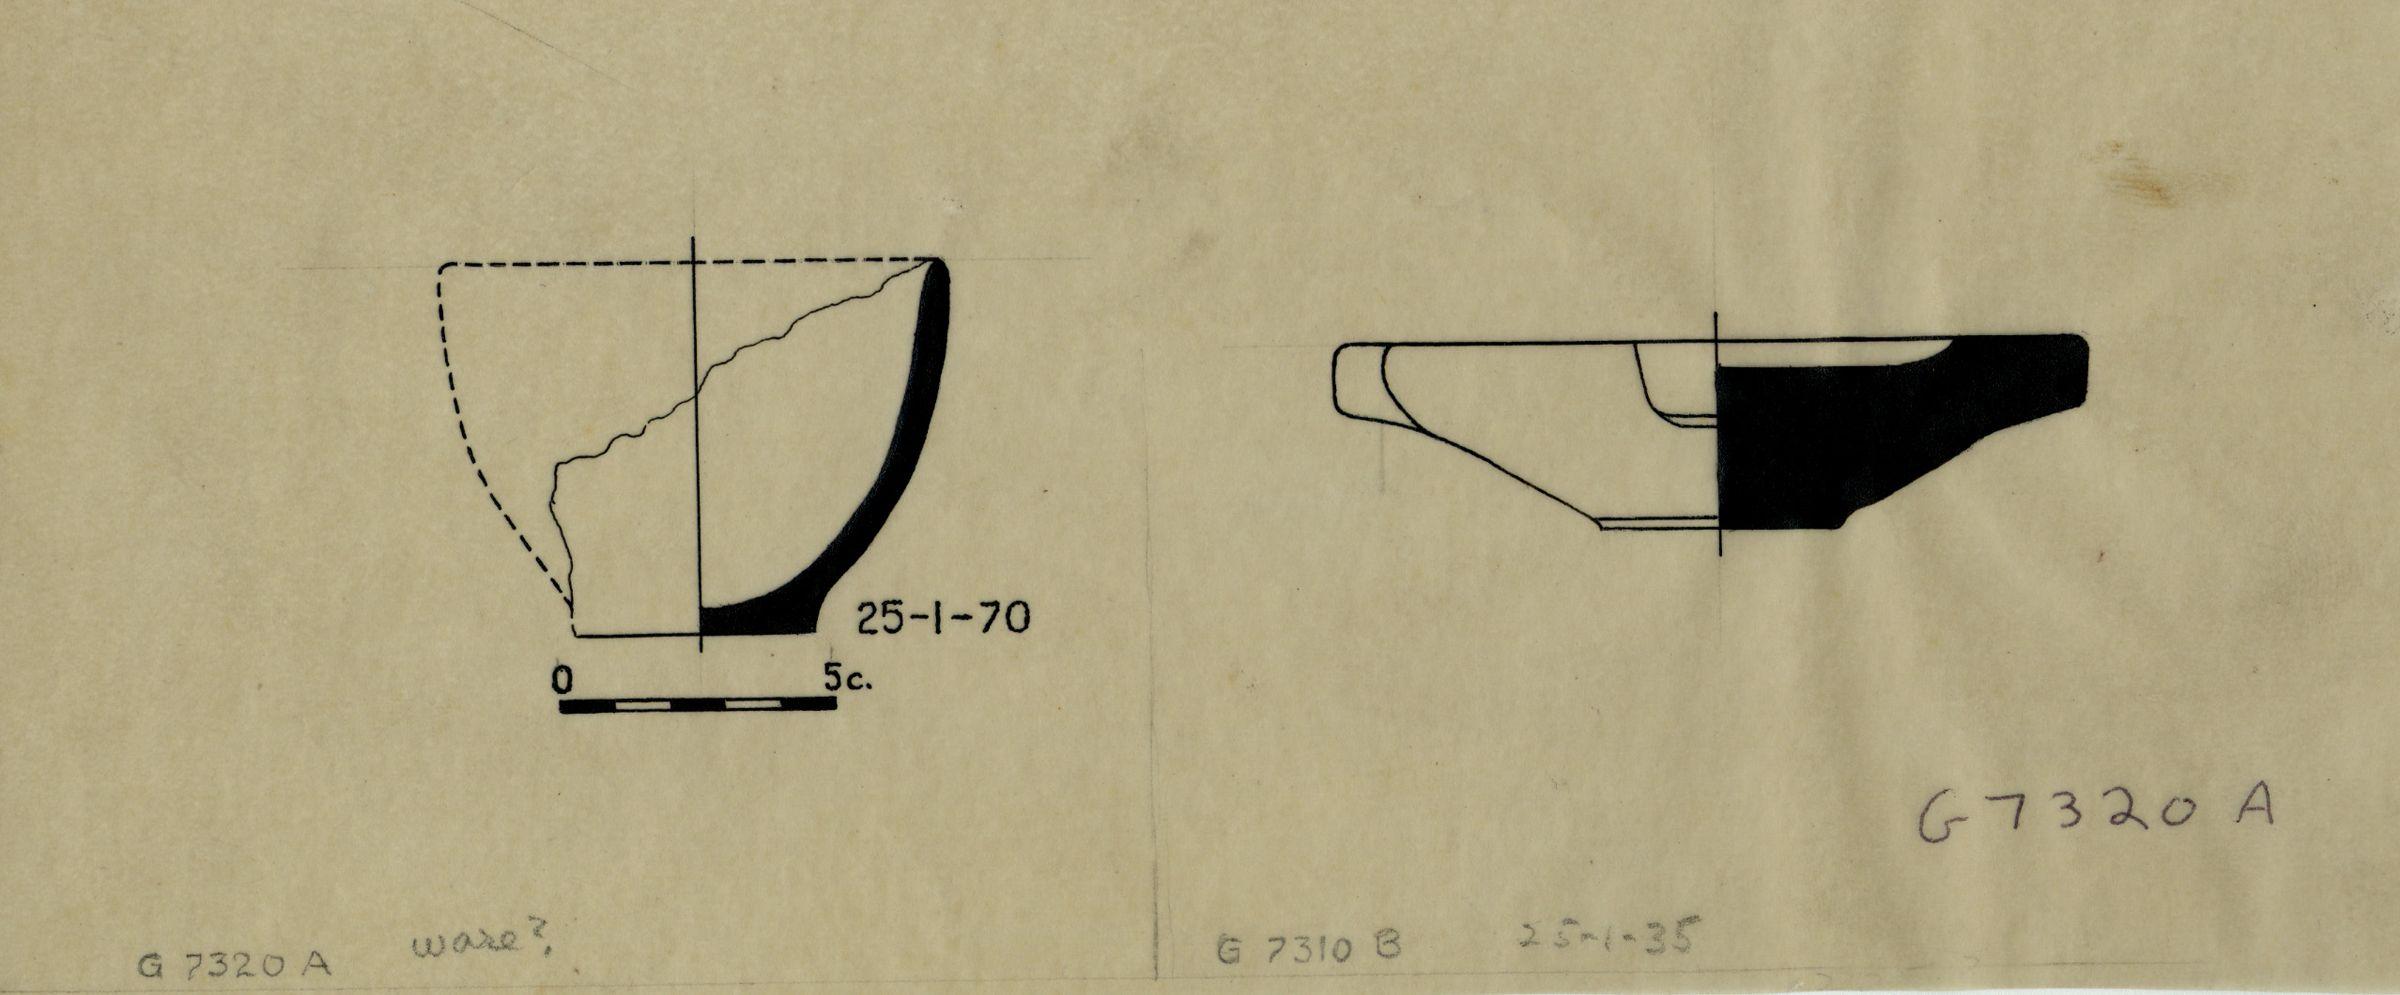 Drawings: Objects from G 7320, Shaft A, and G 7310, Shaft B